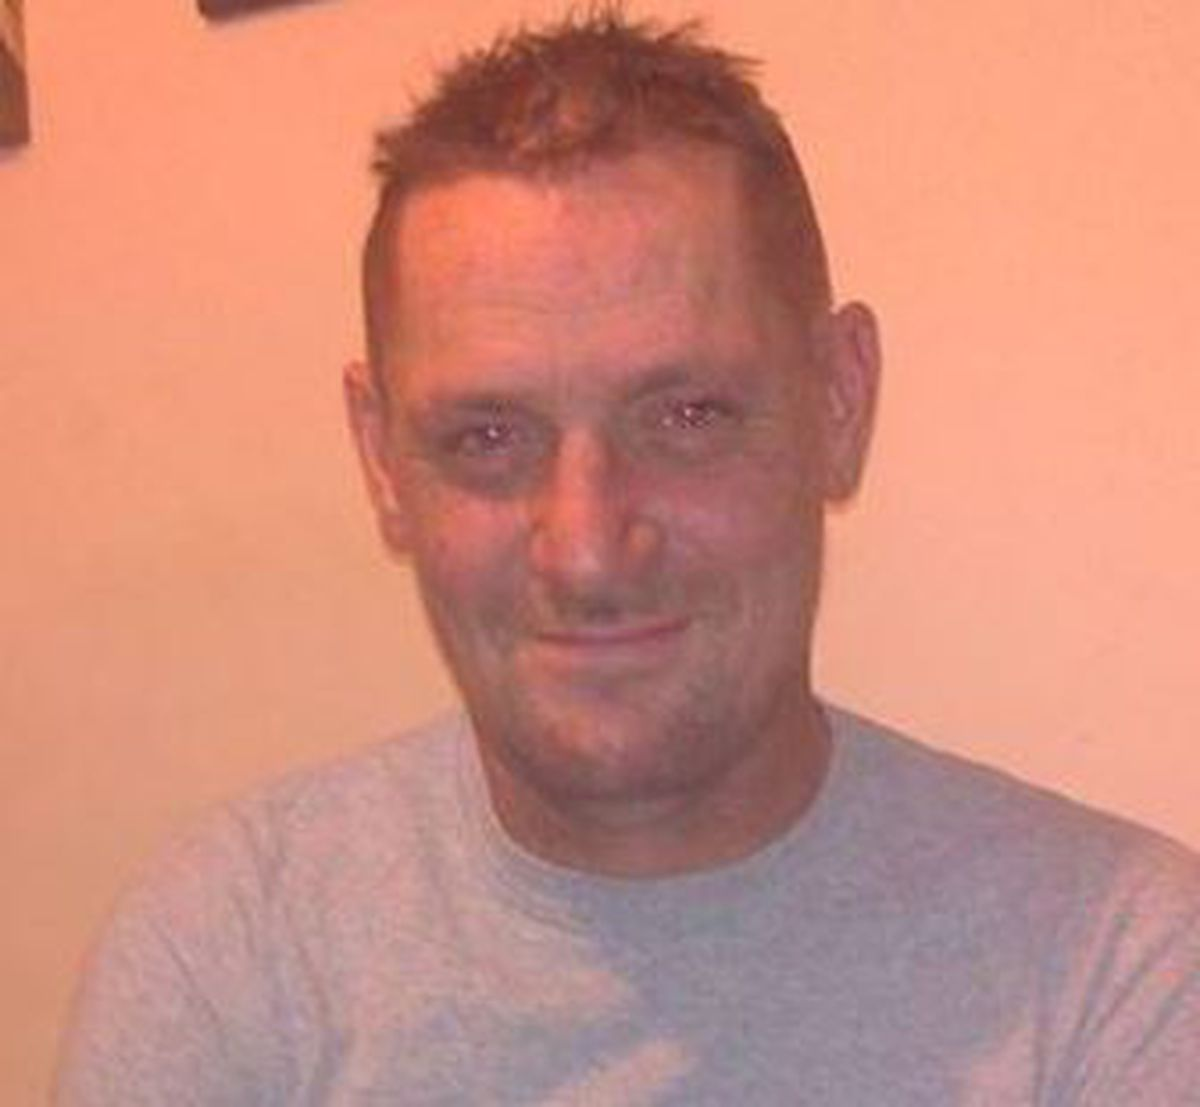 Anthony Bird, known as Goughy, died 17 days after being attacked